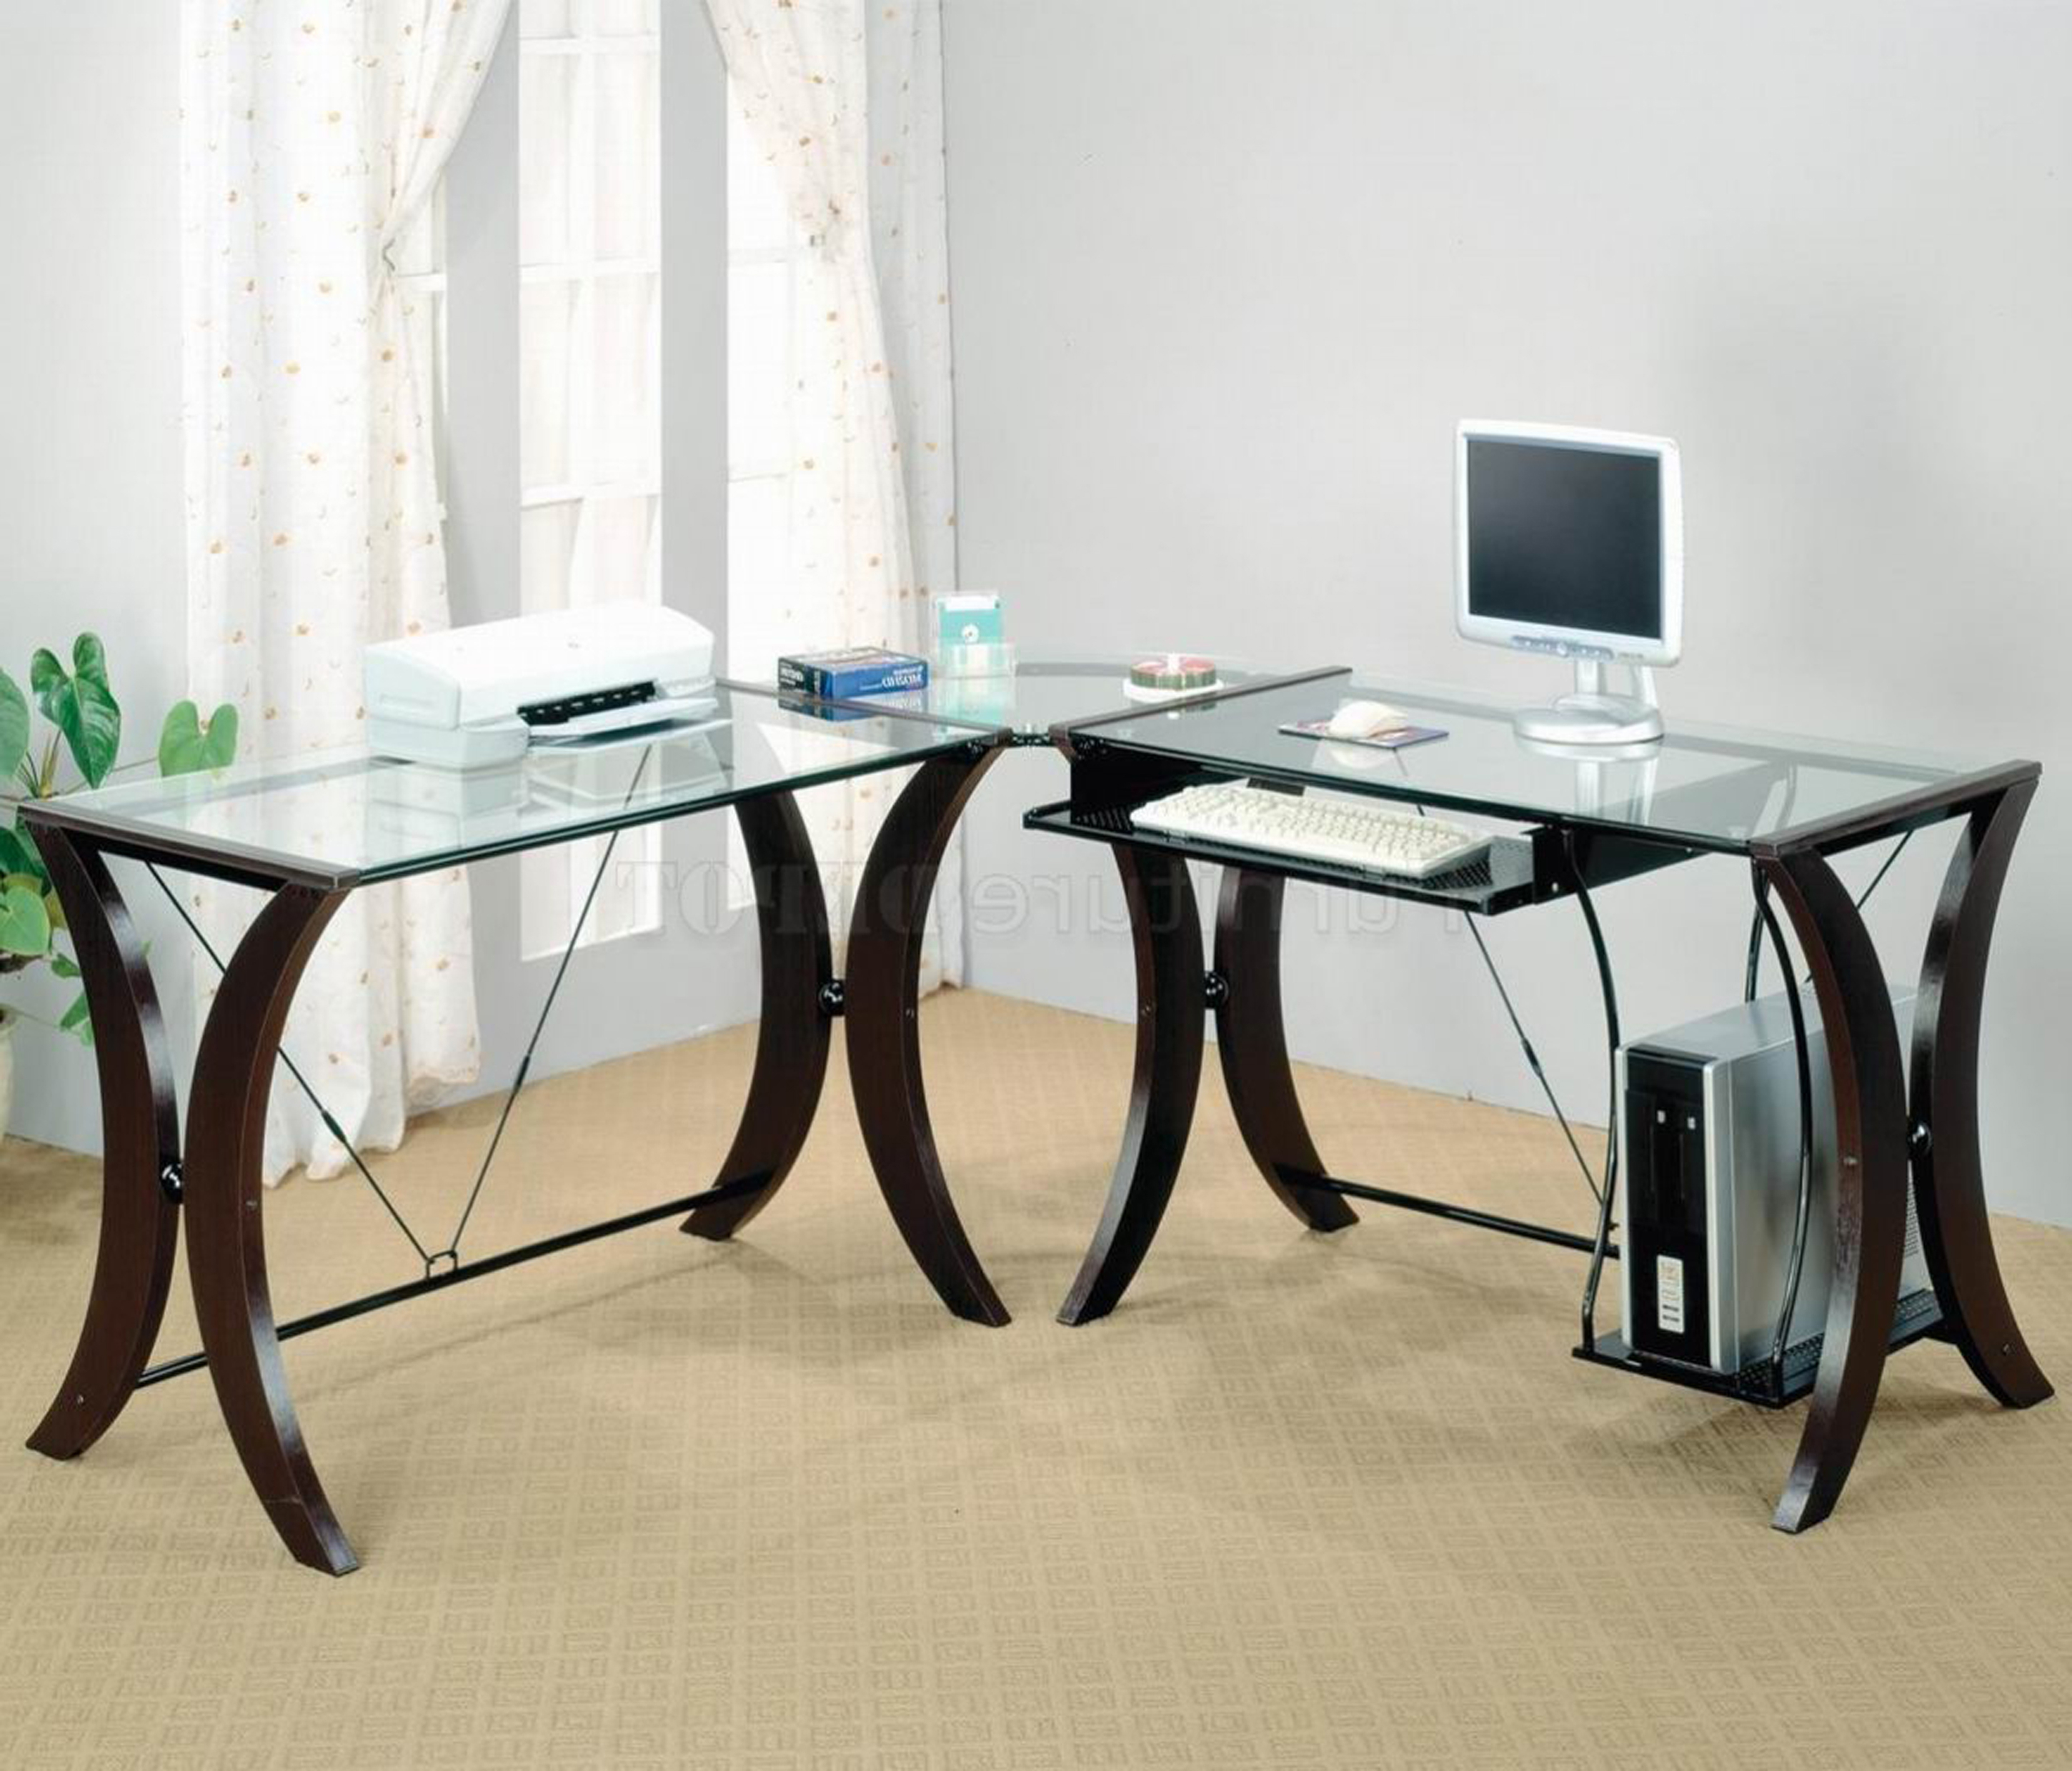 Wonderful Modern Home Office Desk Design Idea With Glass Top Black Base White Computer And White Printer Fabulous Modern Home Office Desk Design Ideas (View 18 of 30)